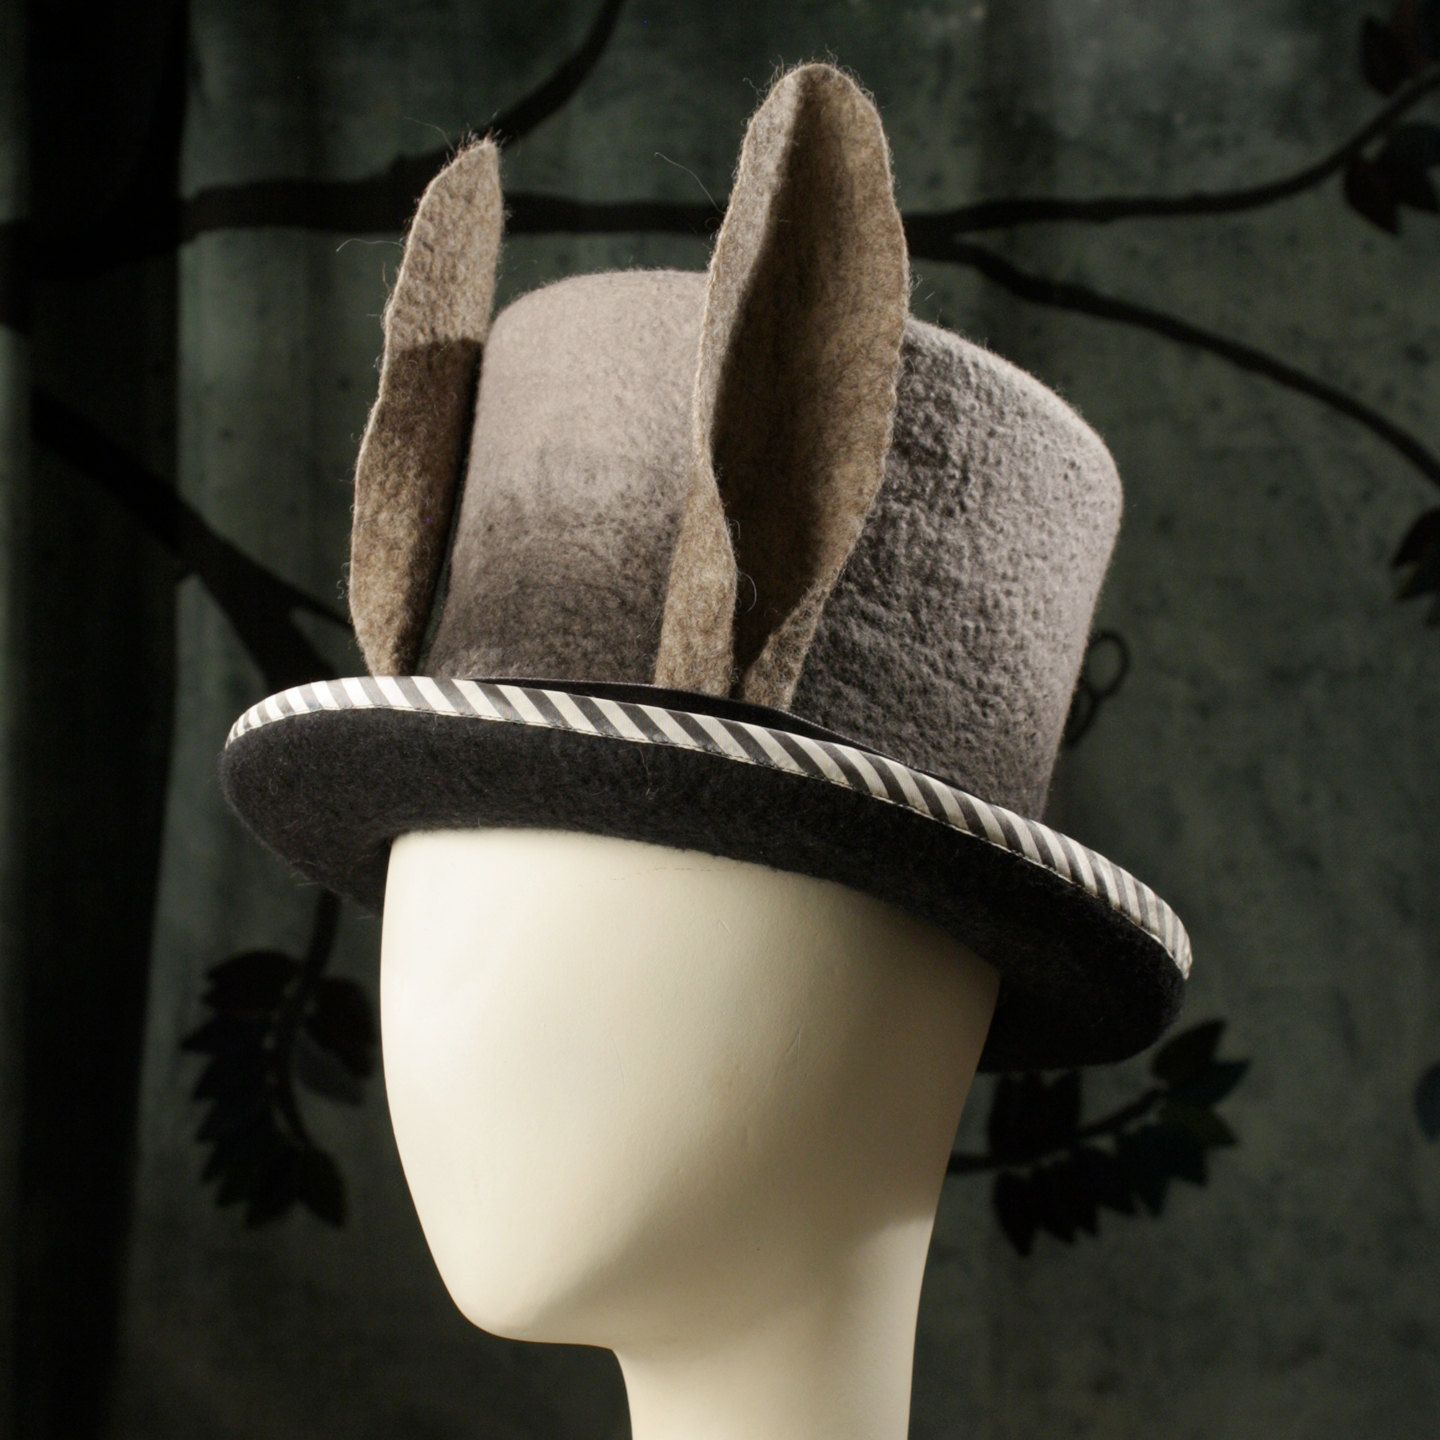 c9bc1ba0a317a An ombre black to white top hat with large rabbit ears. The crown is  encircled with a black velvet ribbon and finished at the side with a brass  stamped key ...